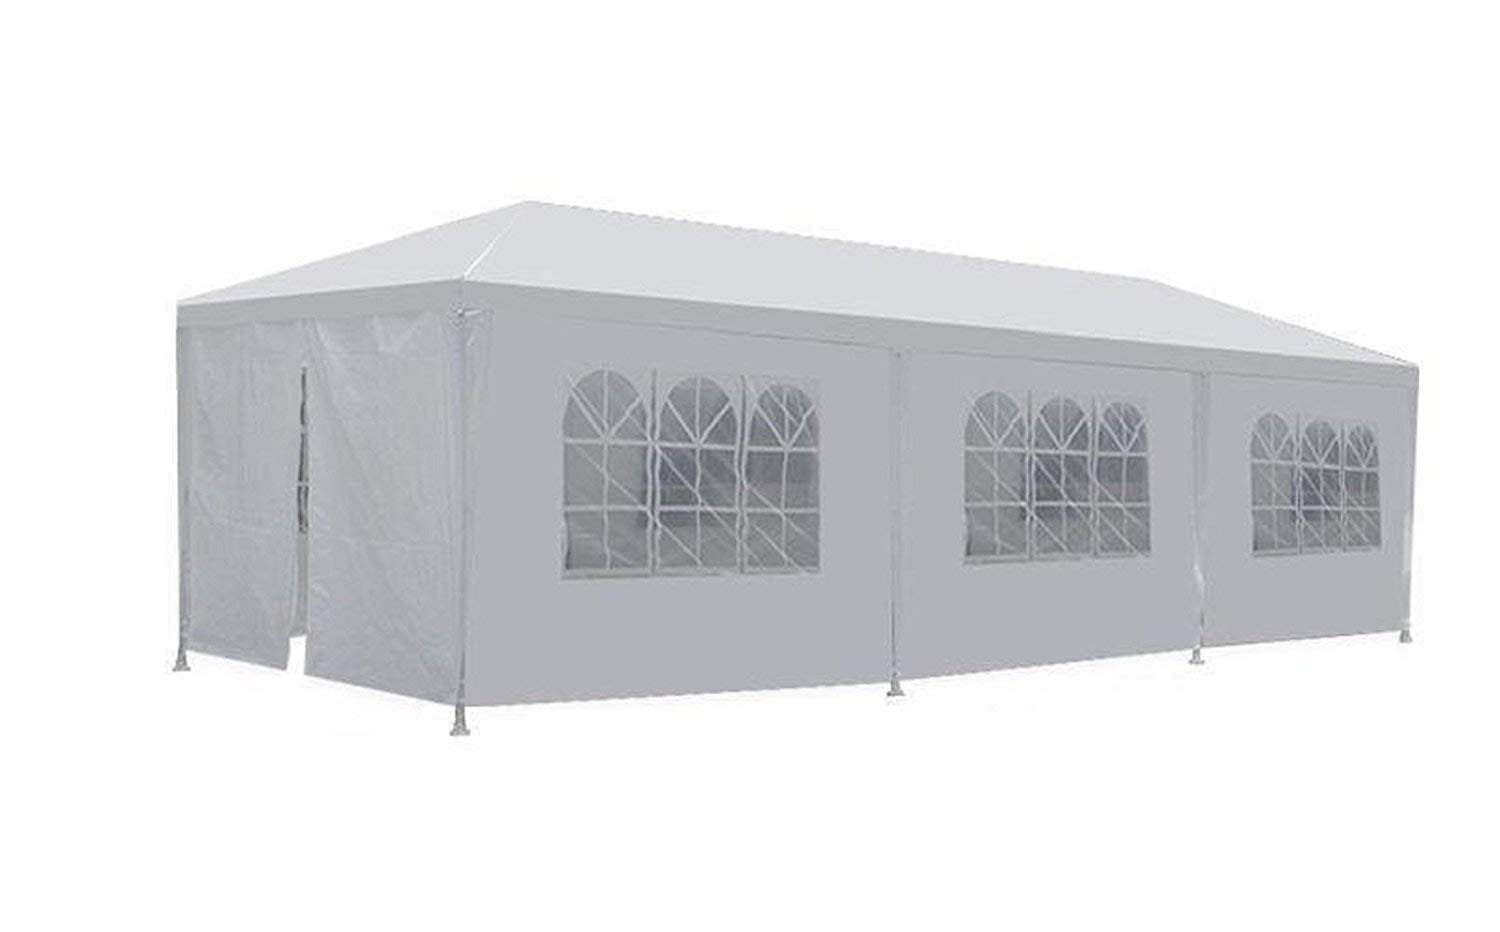 New 10ft x 30ft x 8.5ft White Outdoor Gazebo Canopy Party Wedding Tent